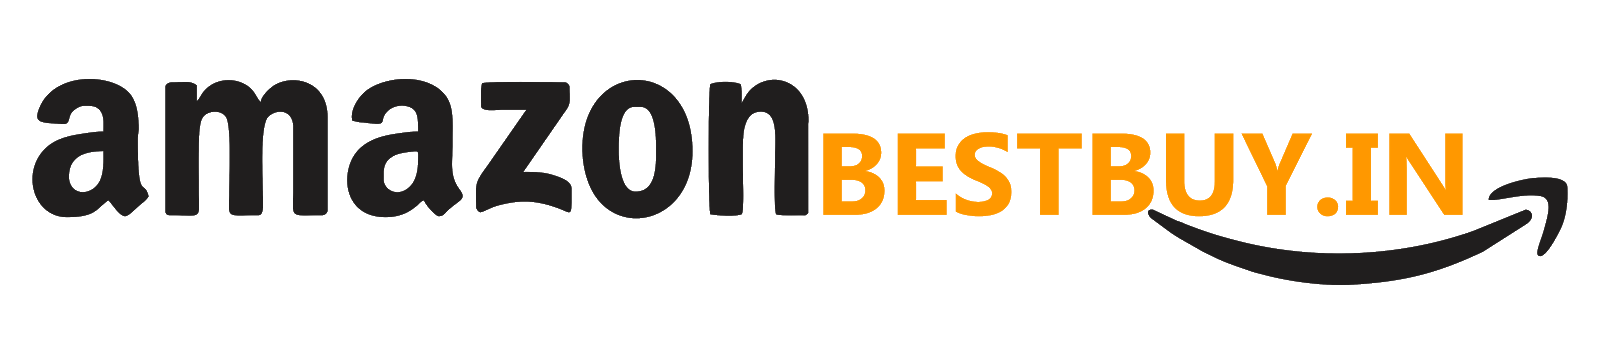 Amazon Best Buy - Health, Beauty & Personal Care | Personal Care Appliances